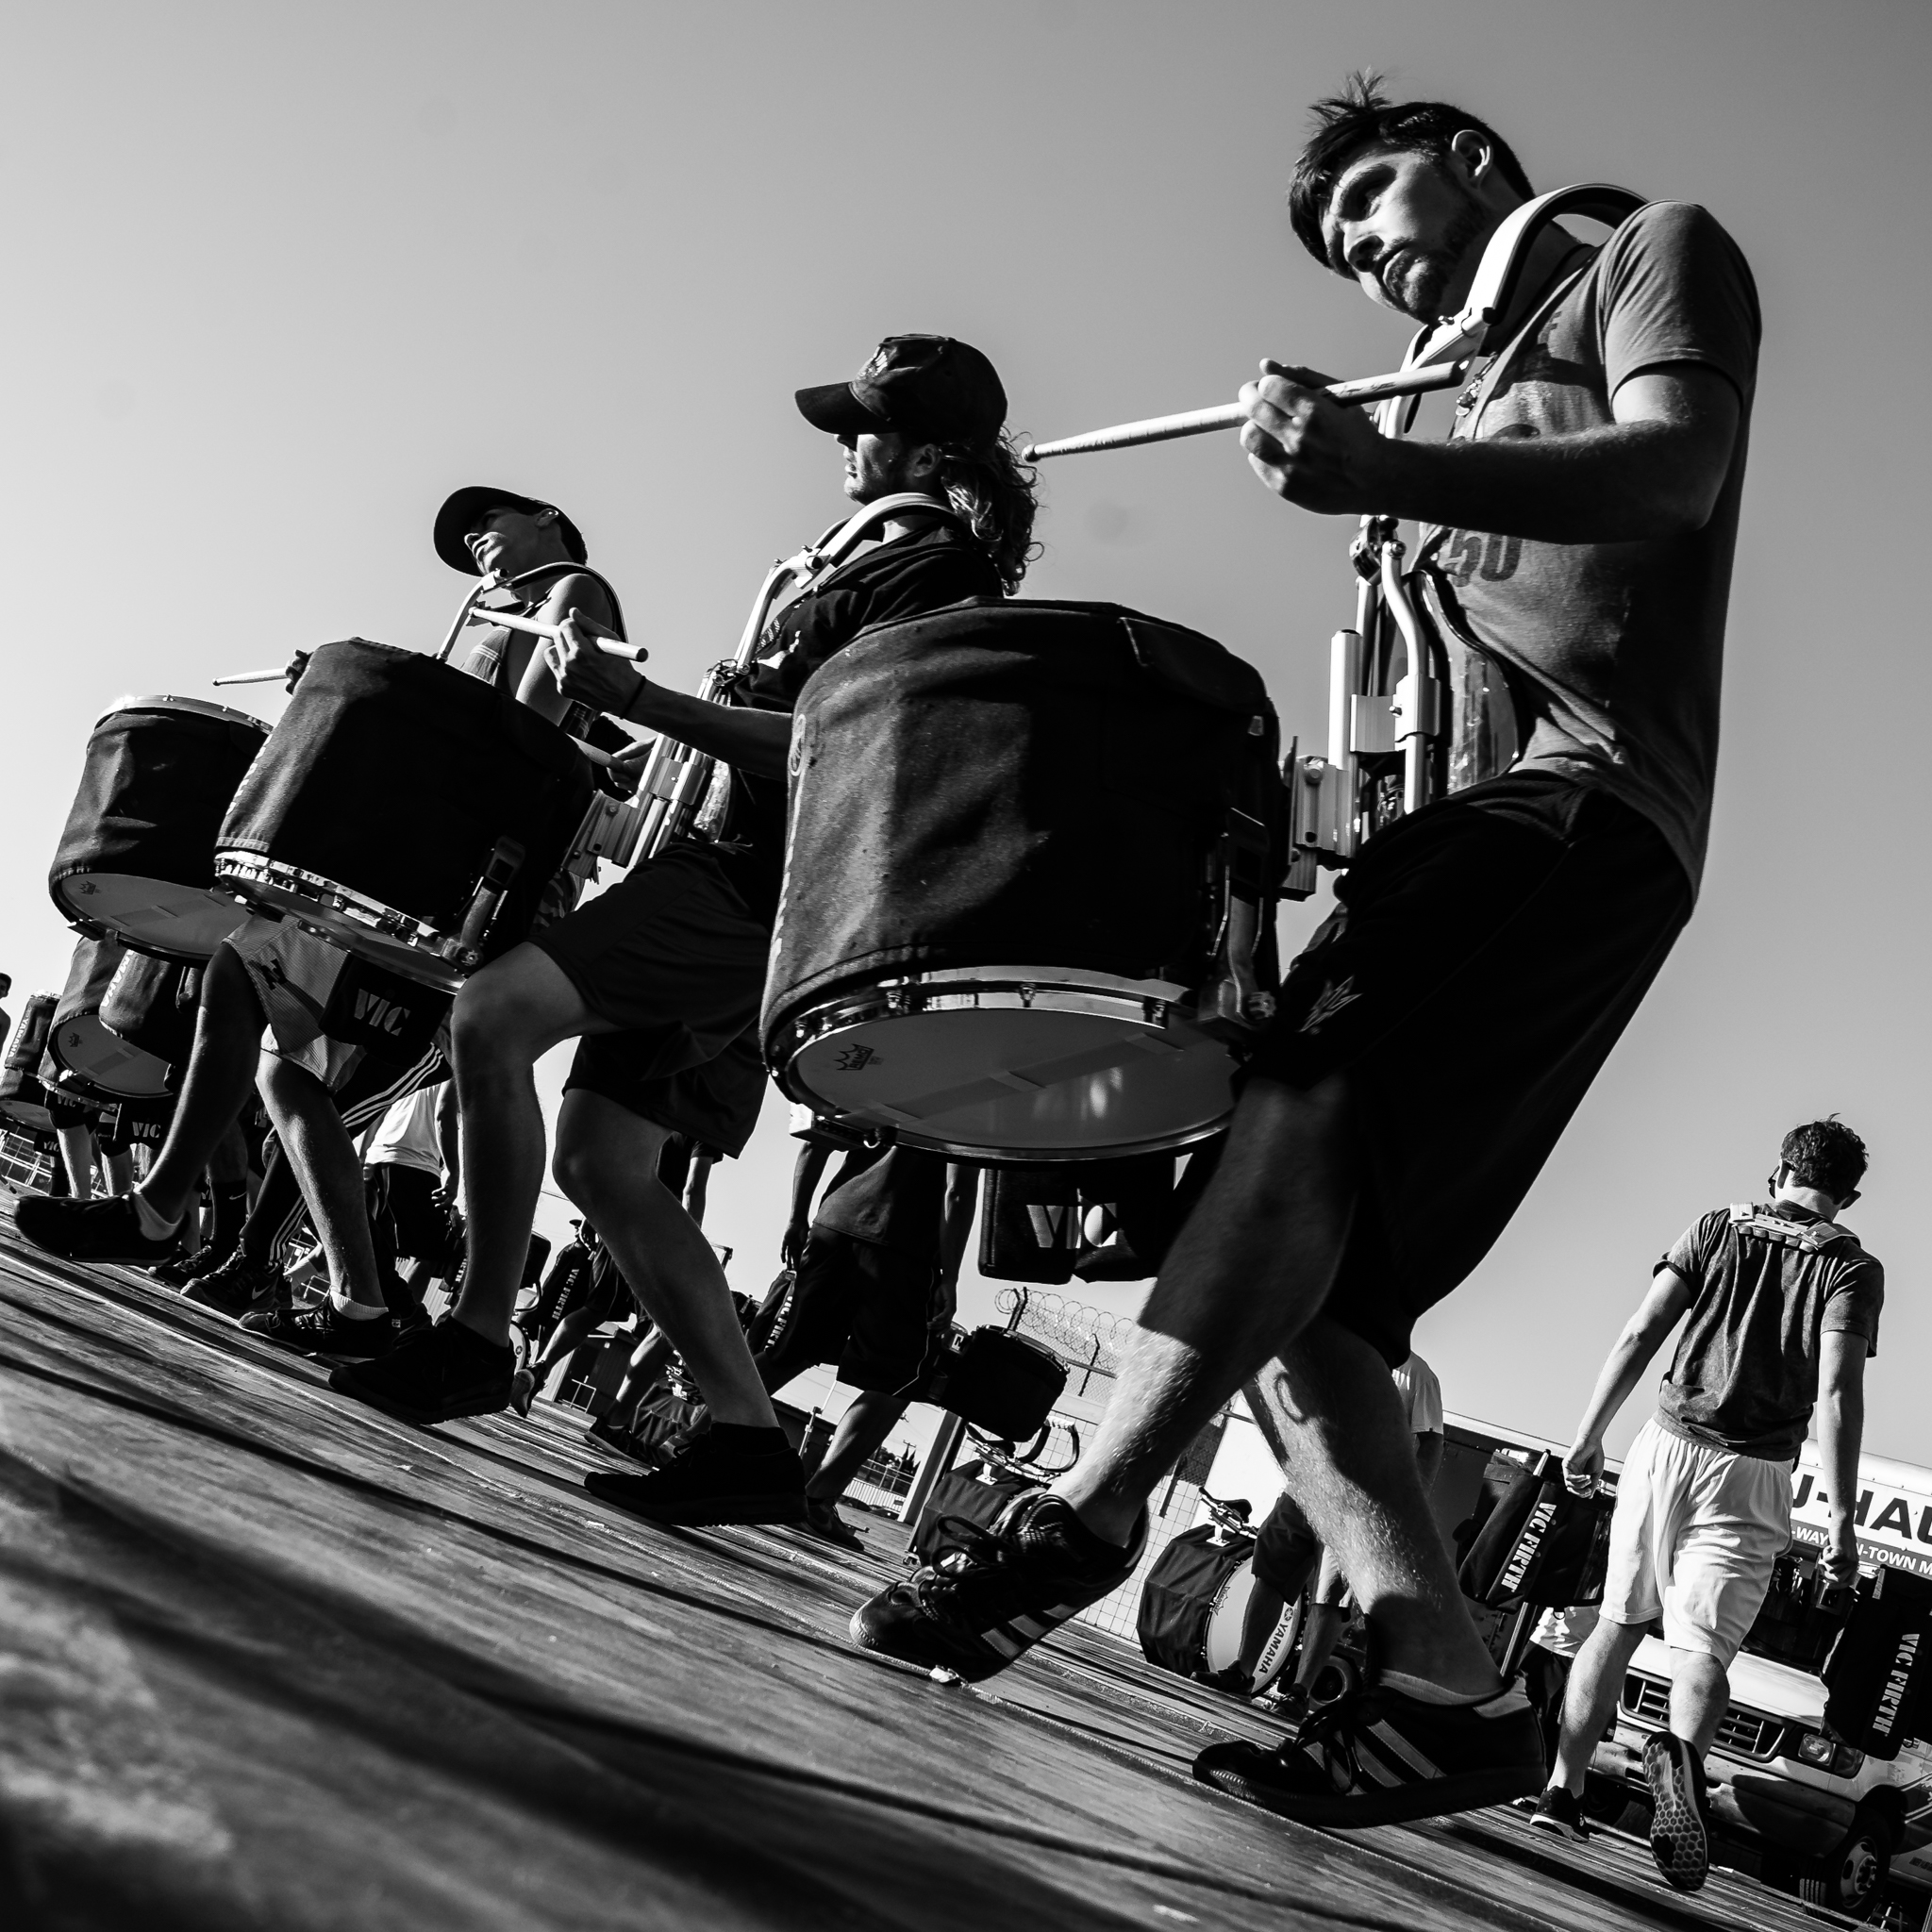 Snares Anthony Angle B&W 1x1.jpg